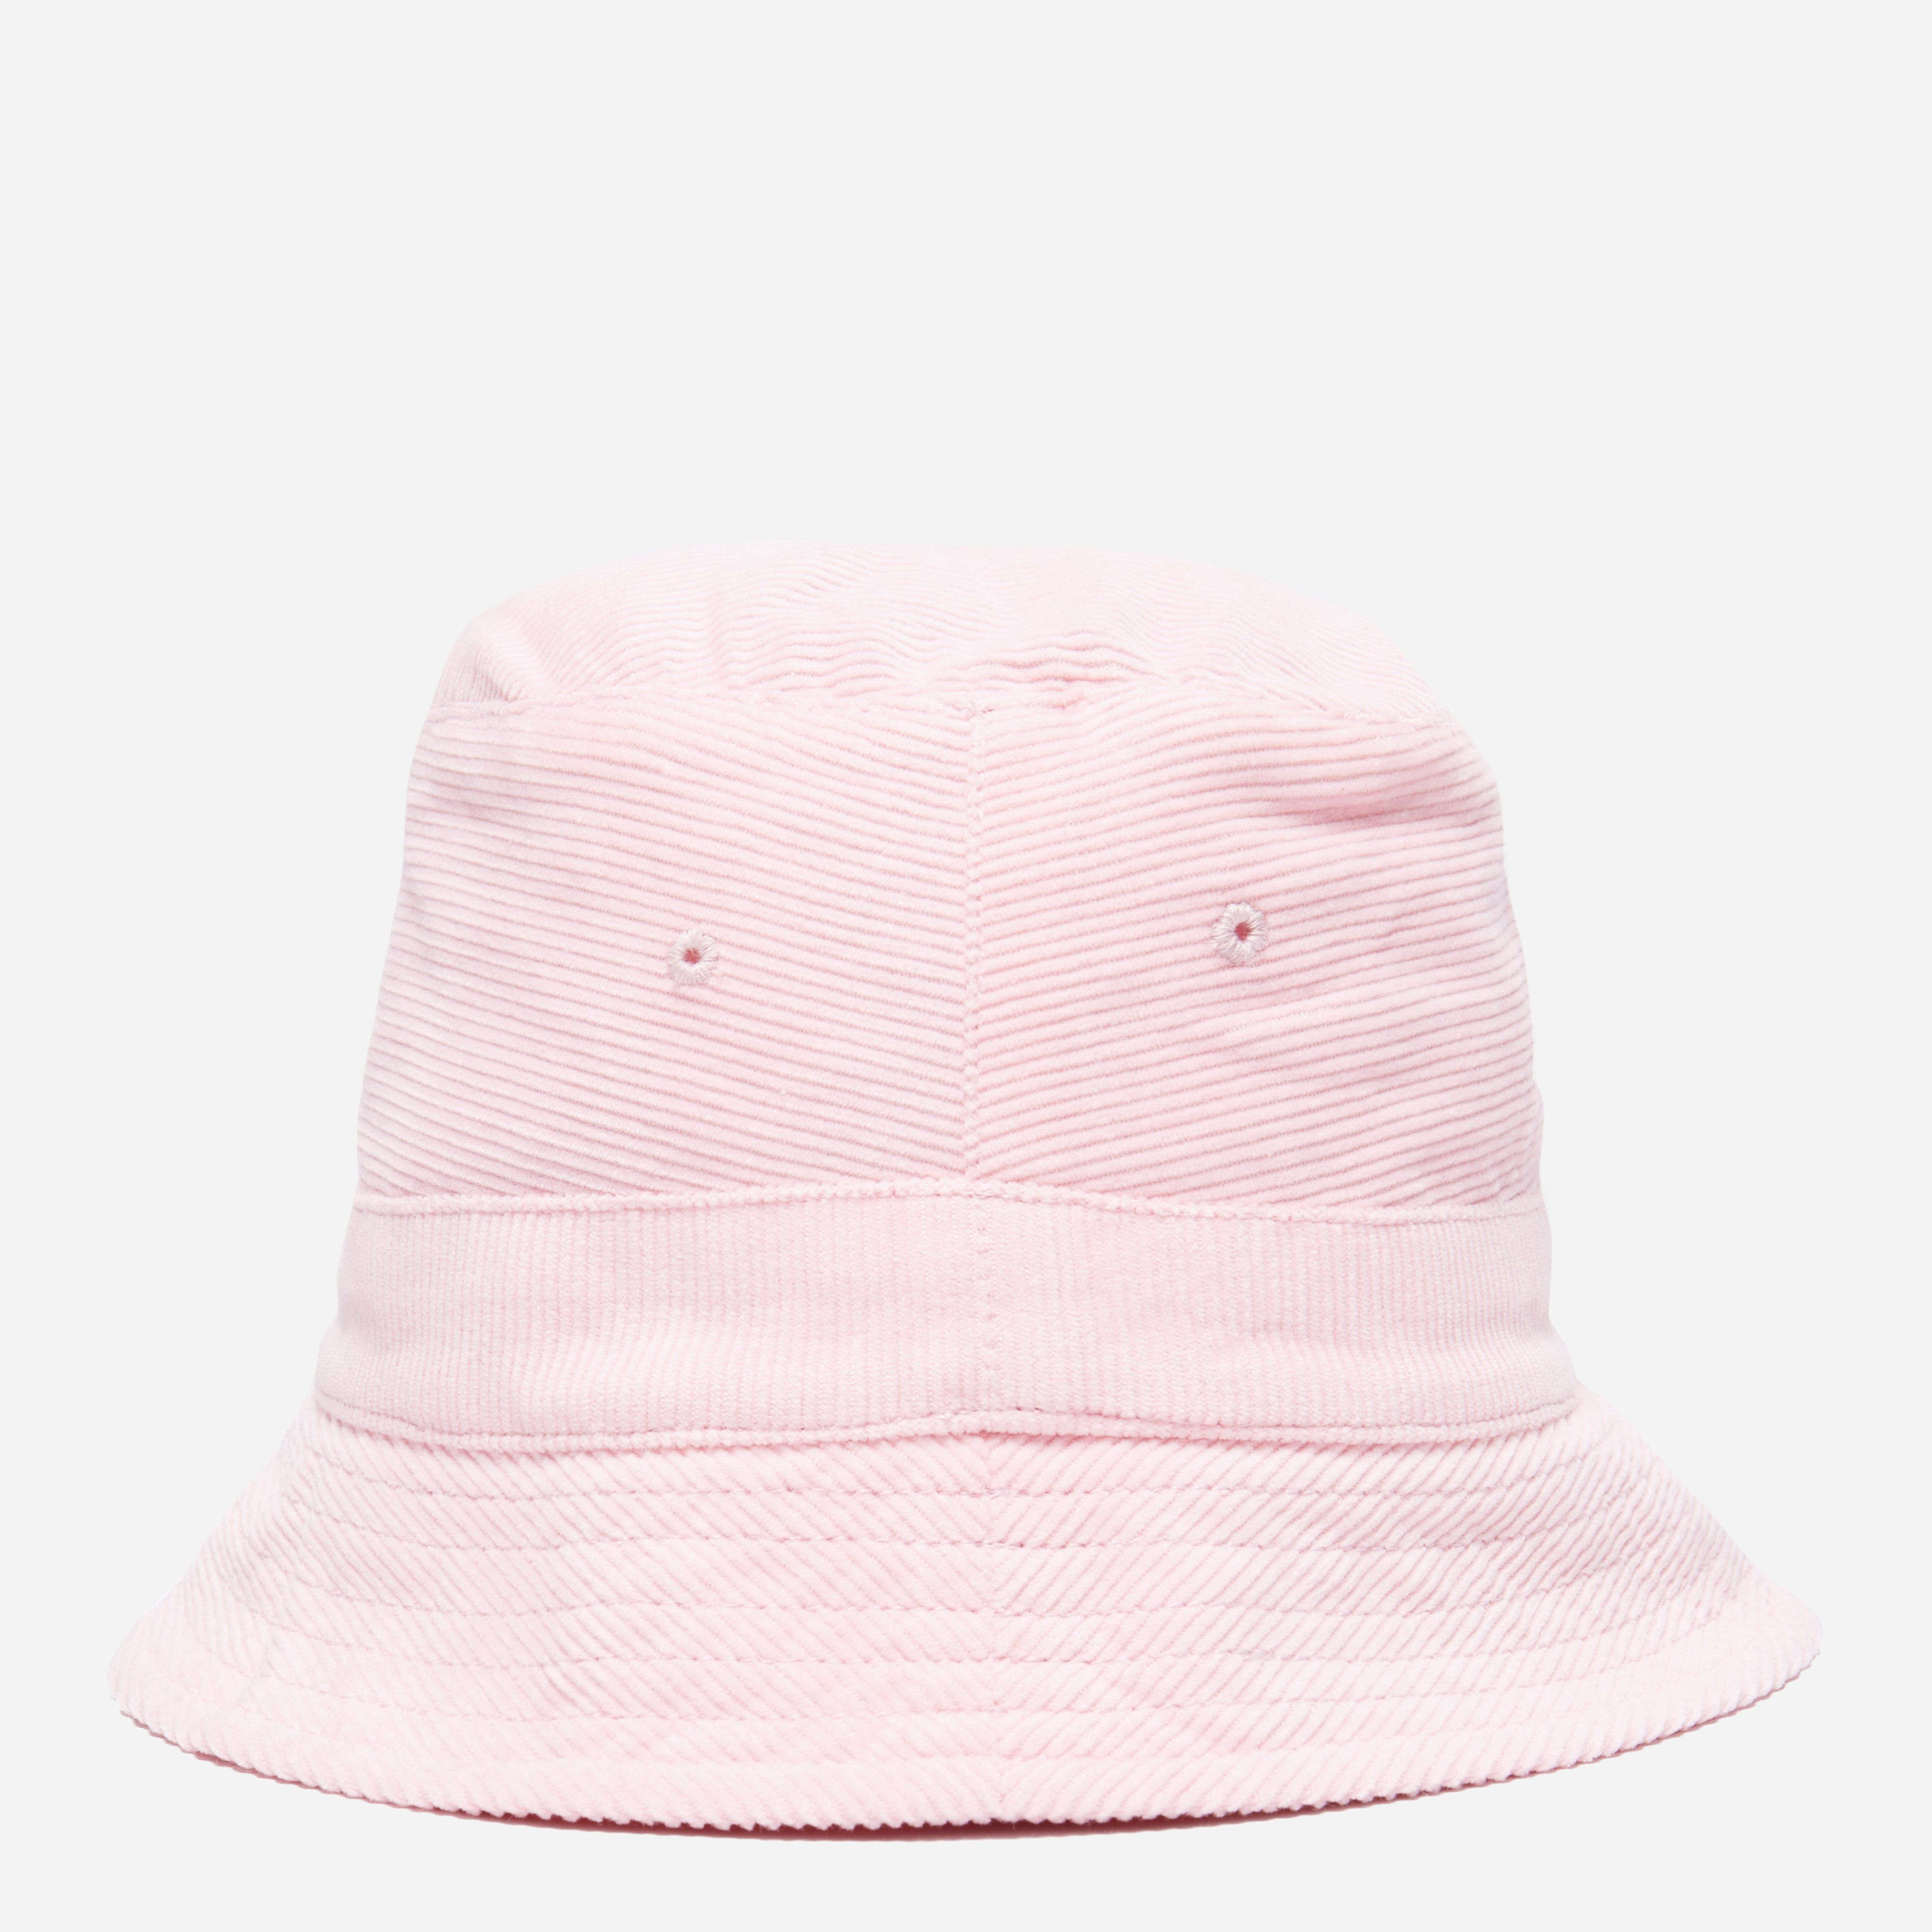 Universal Works x The Hip Store Cord Bucket Hat